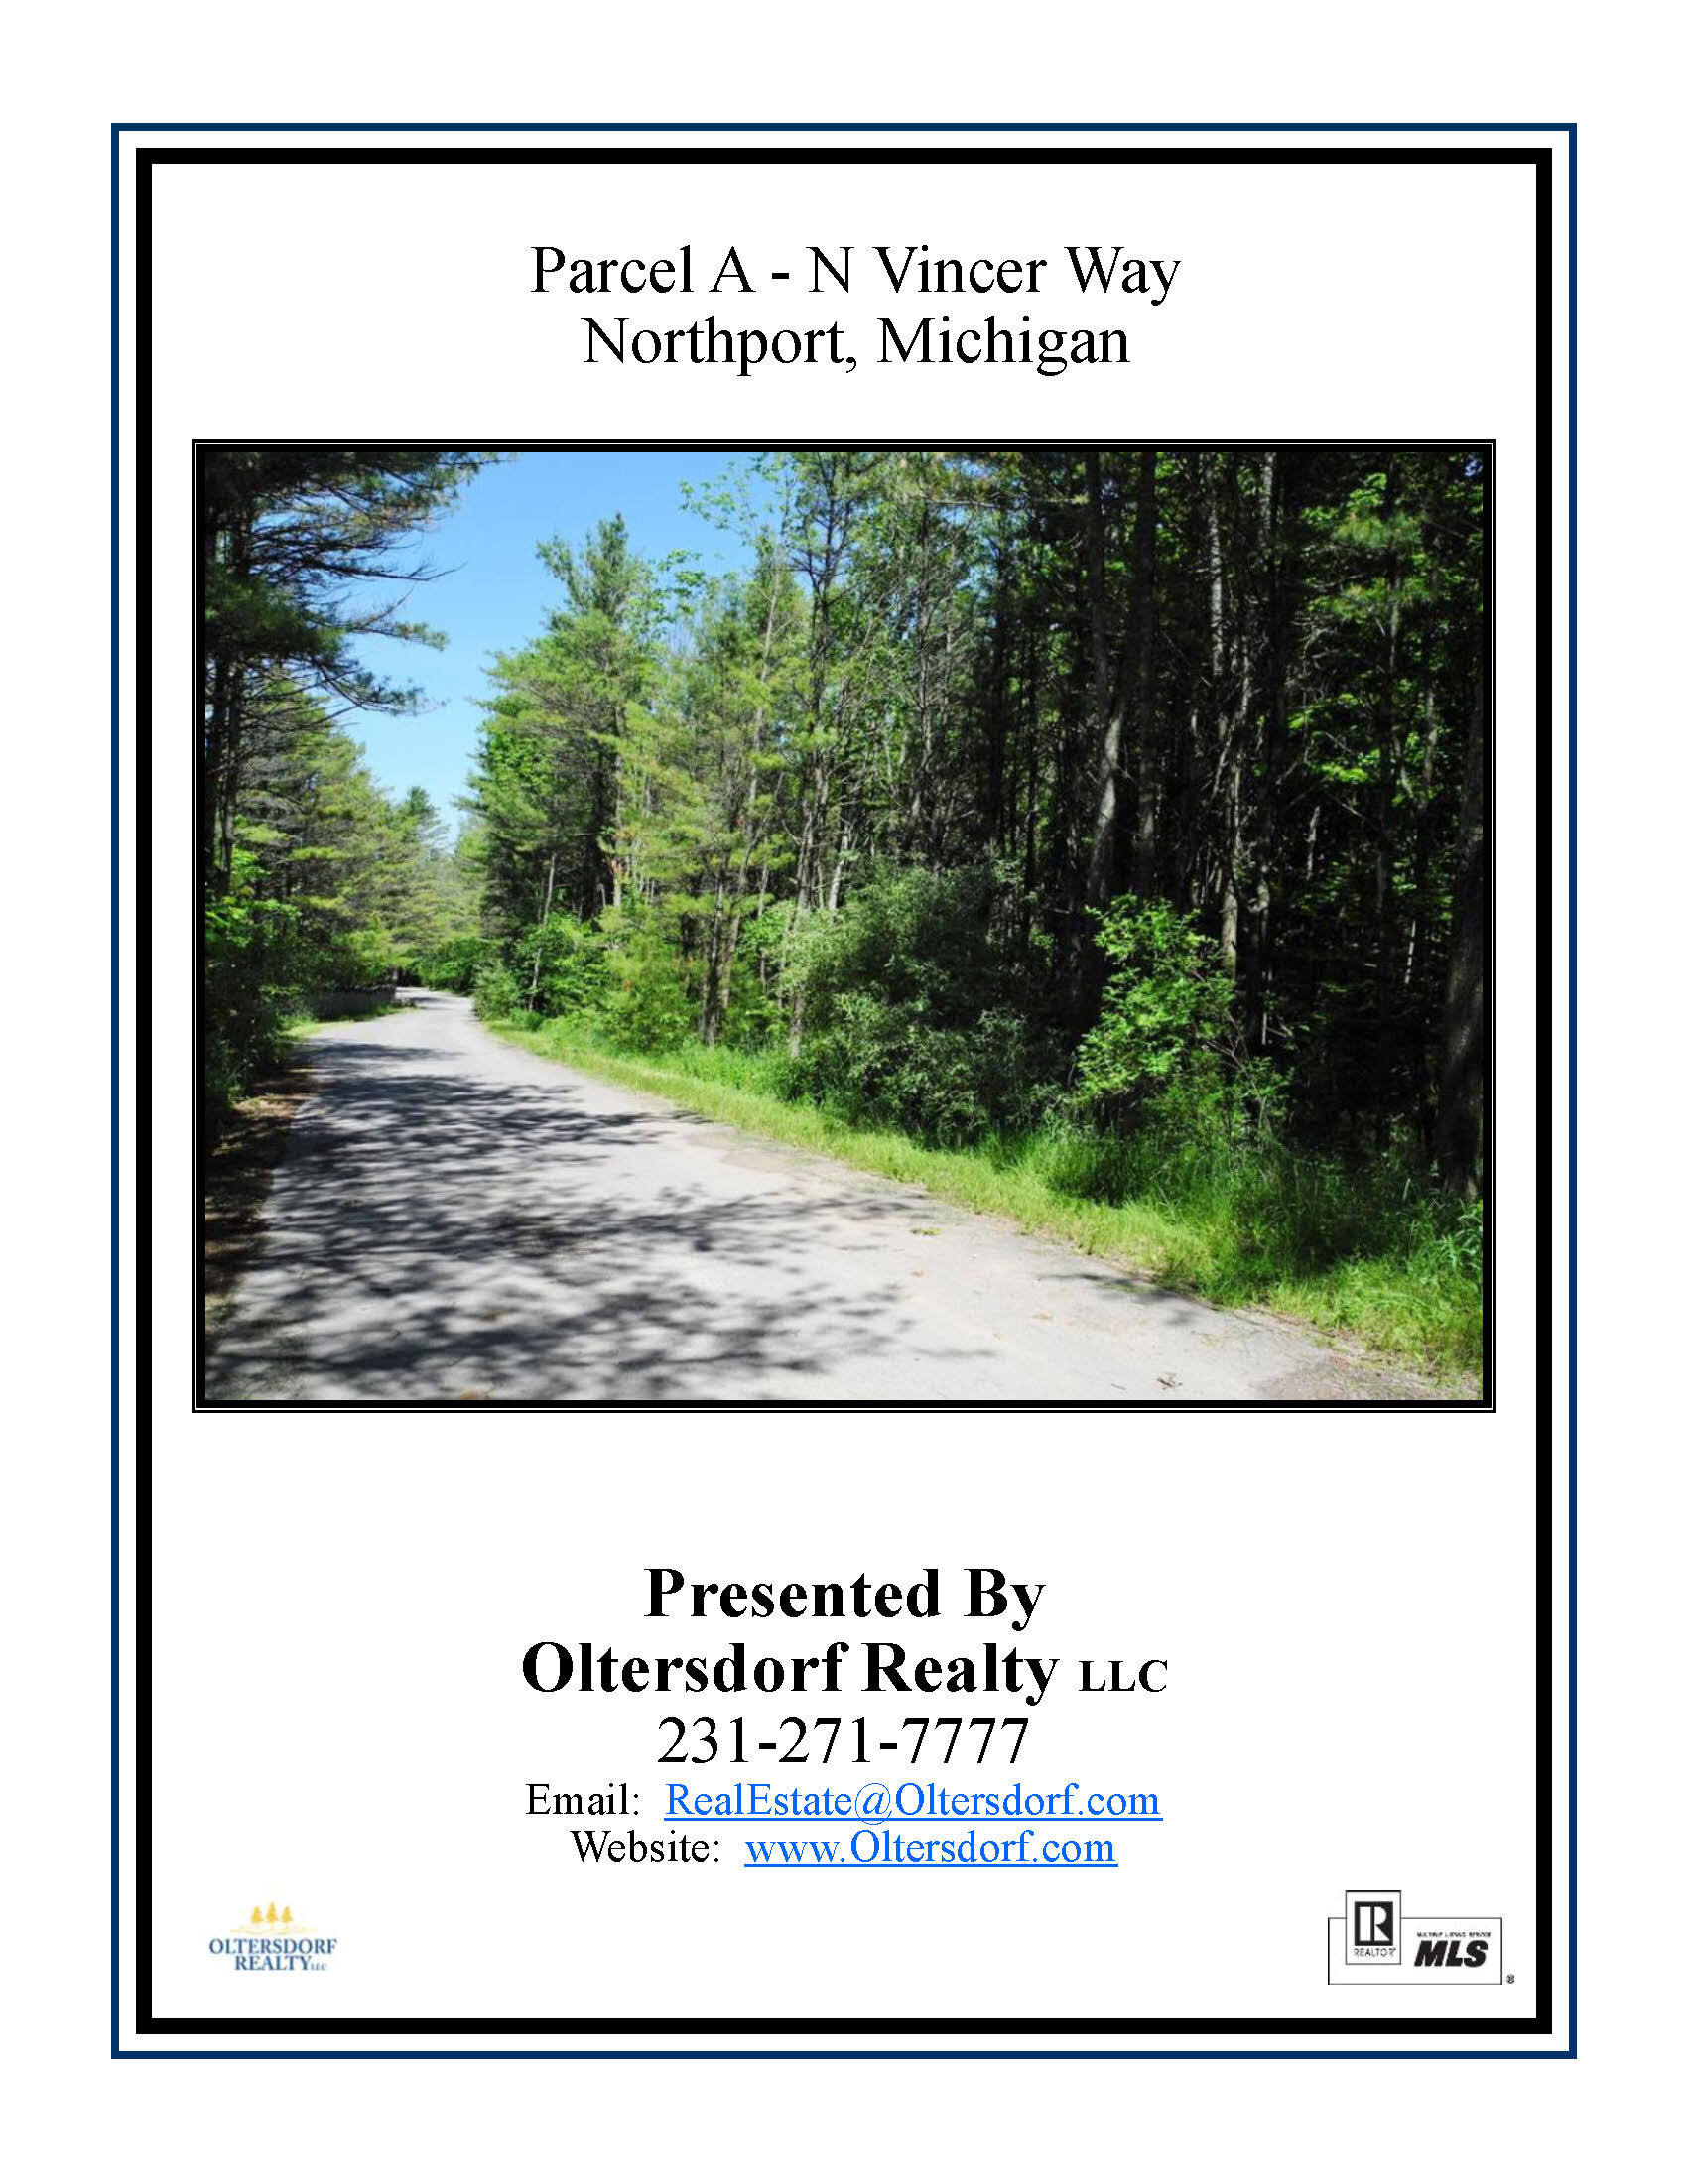 Parcel A - N Vincer Way, Northport - For Sale By Oltersdorf Realty LLC - Marketing Packet_Page_01.jpg